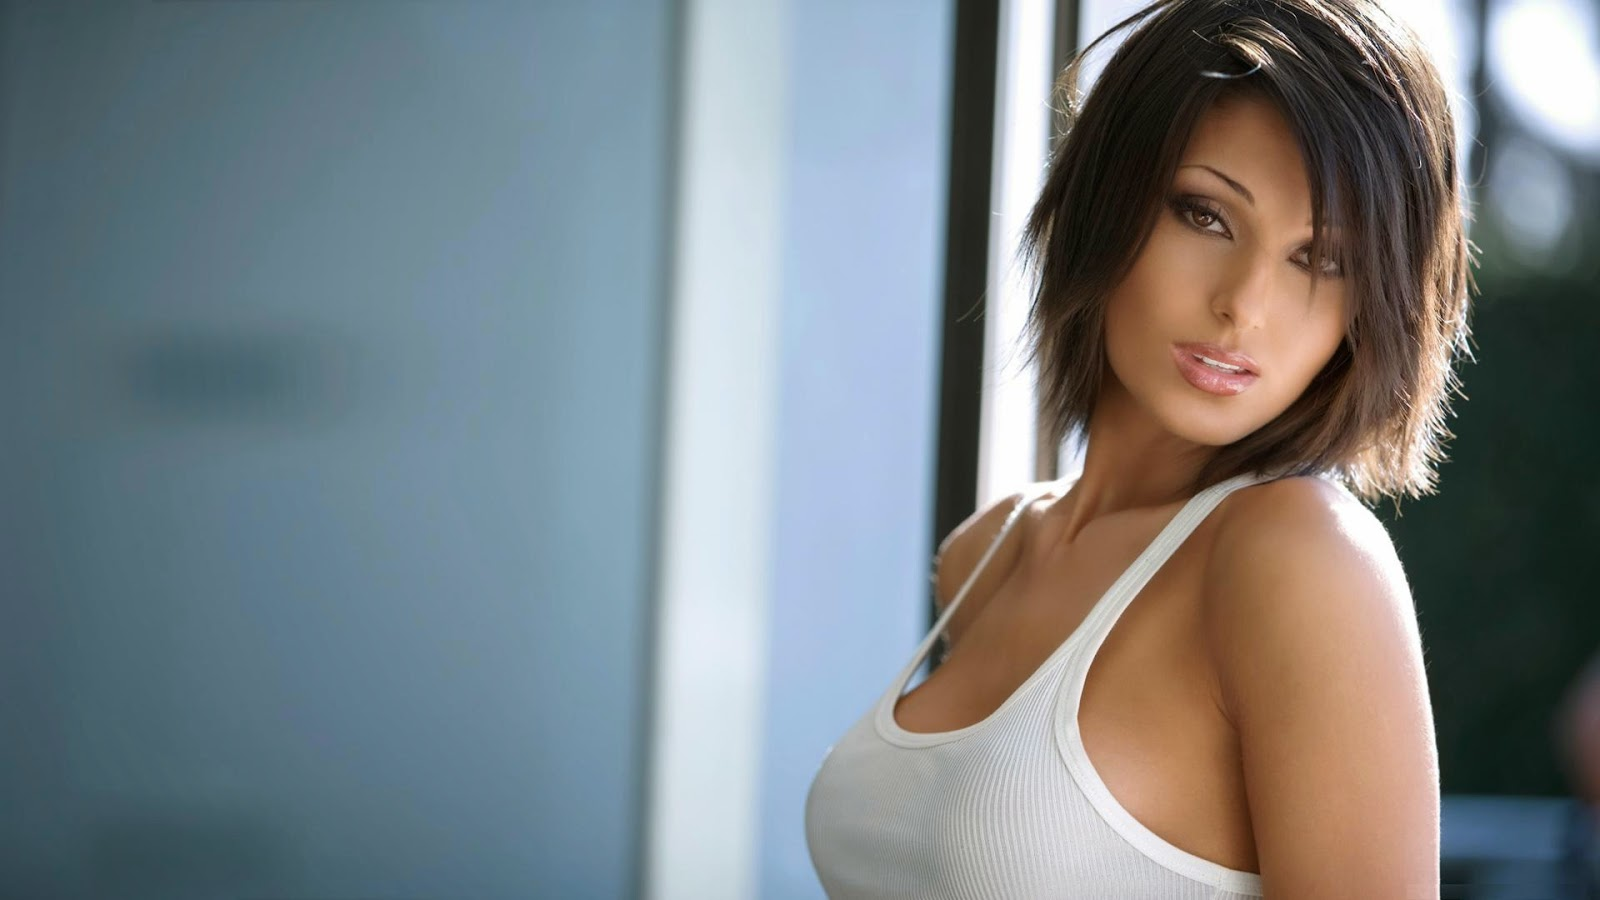 Anna Tatangelo Hd Wallpapers Free Download